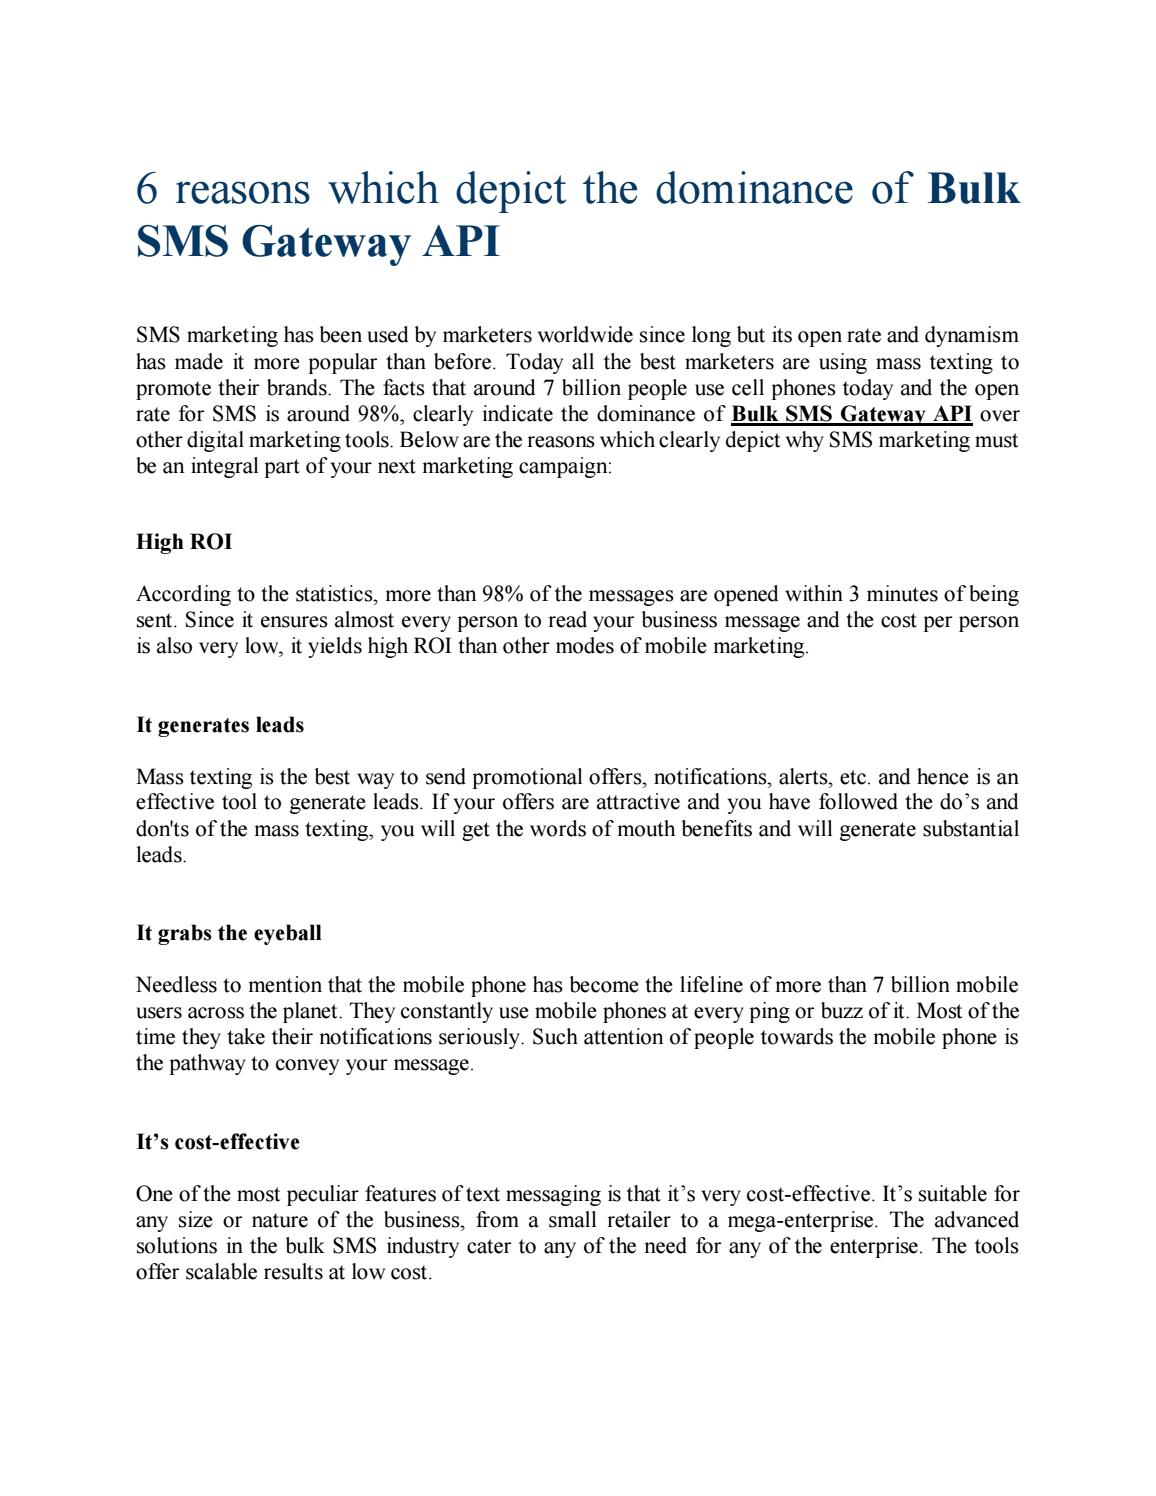 Bulk SMS Gateway API-6 Reasons Which Depict the Dominance by Kaveri